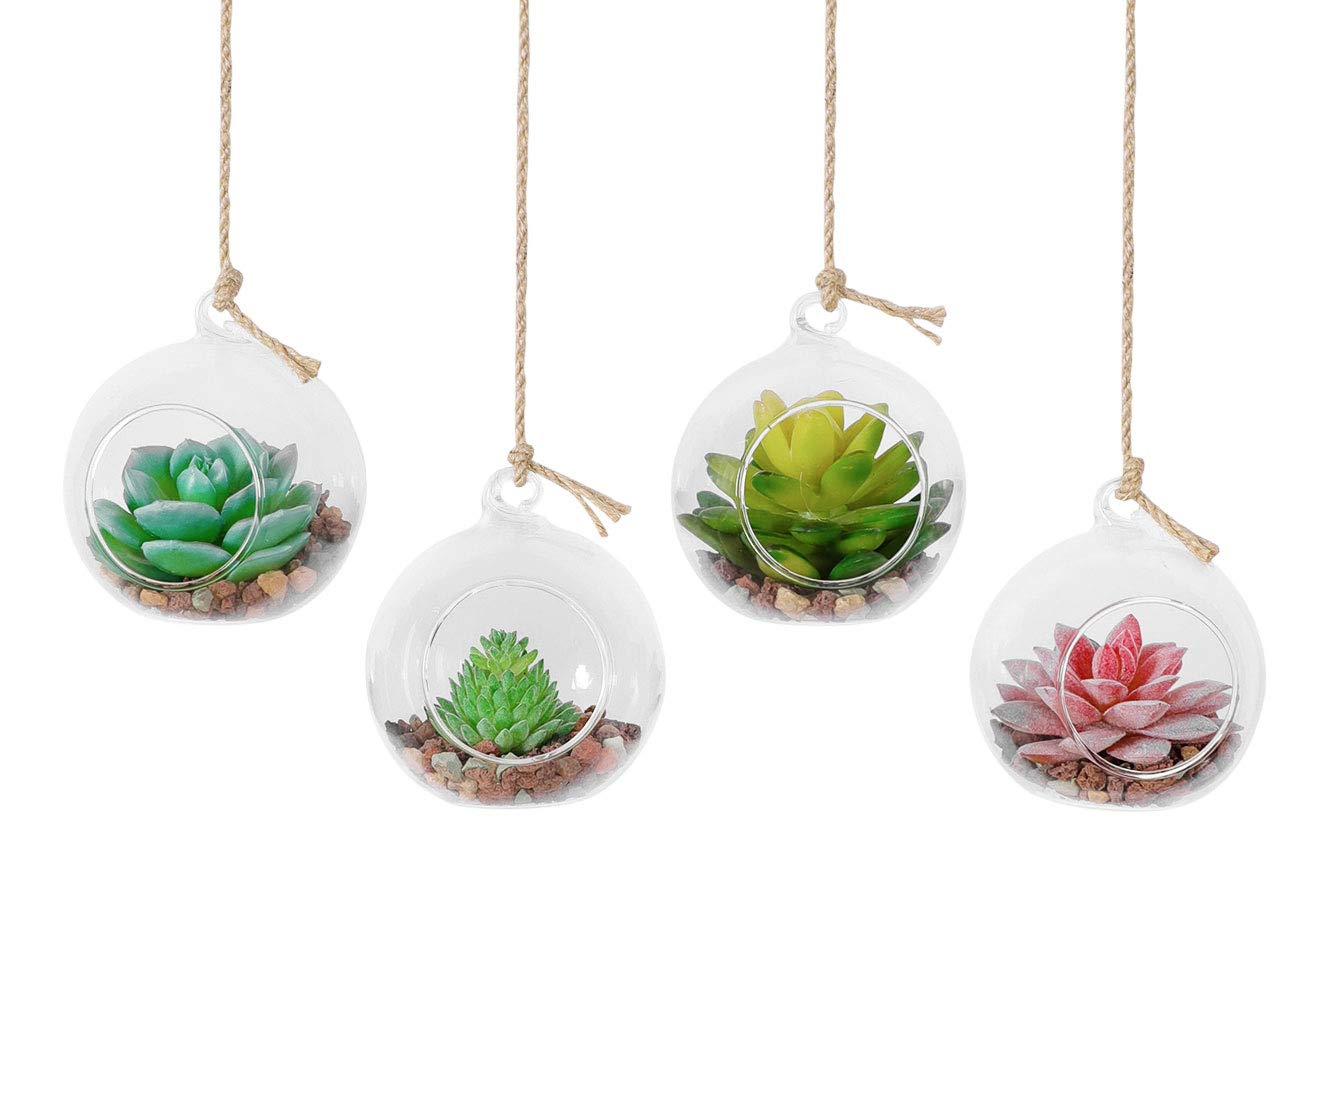 TQVAI 4 Pack Hanging Glass Globe Air Planter Terrarium Vase with 39 inch Sling Not Included The Plants